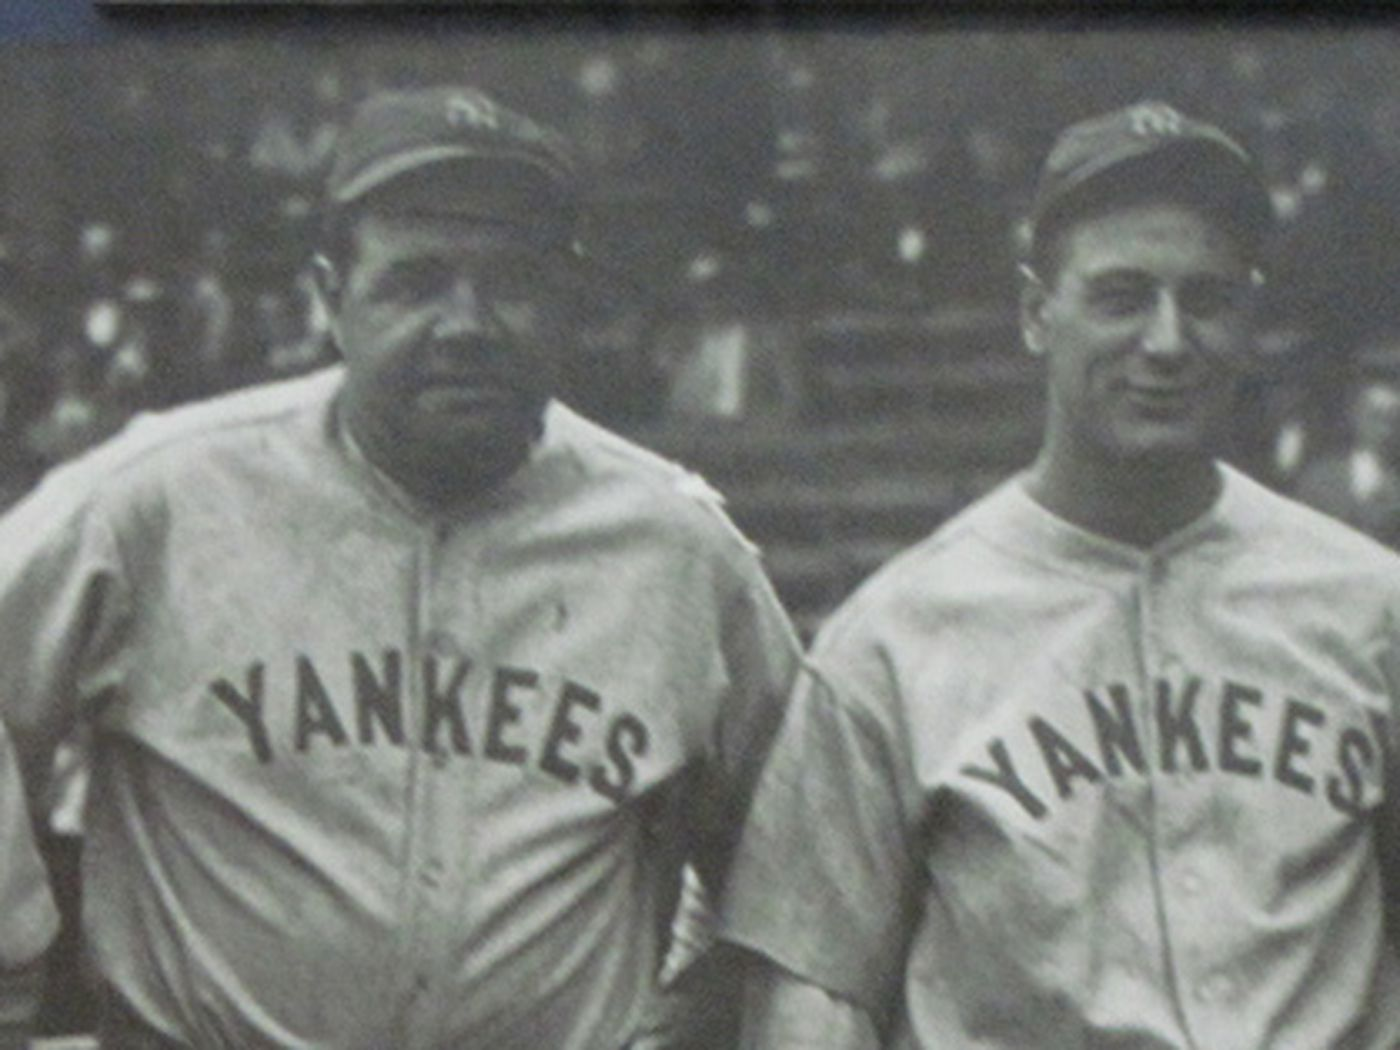 340c5b9dce5ee Remembering the oft-forgotten 1928 World Series between the Yankees and  Cardinals - Pinstripe Alley